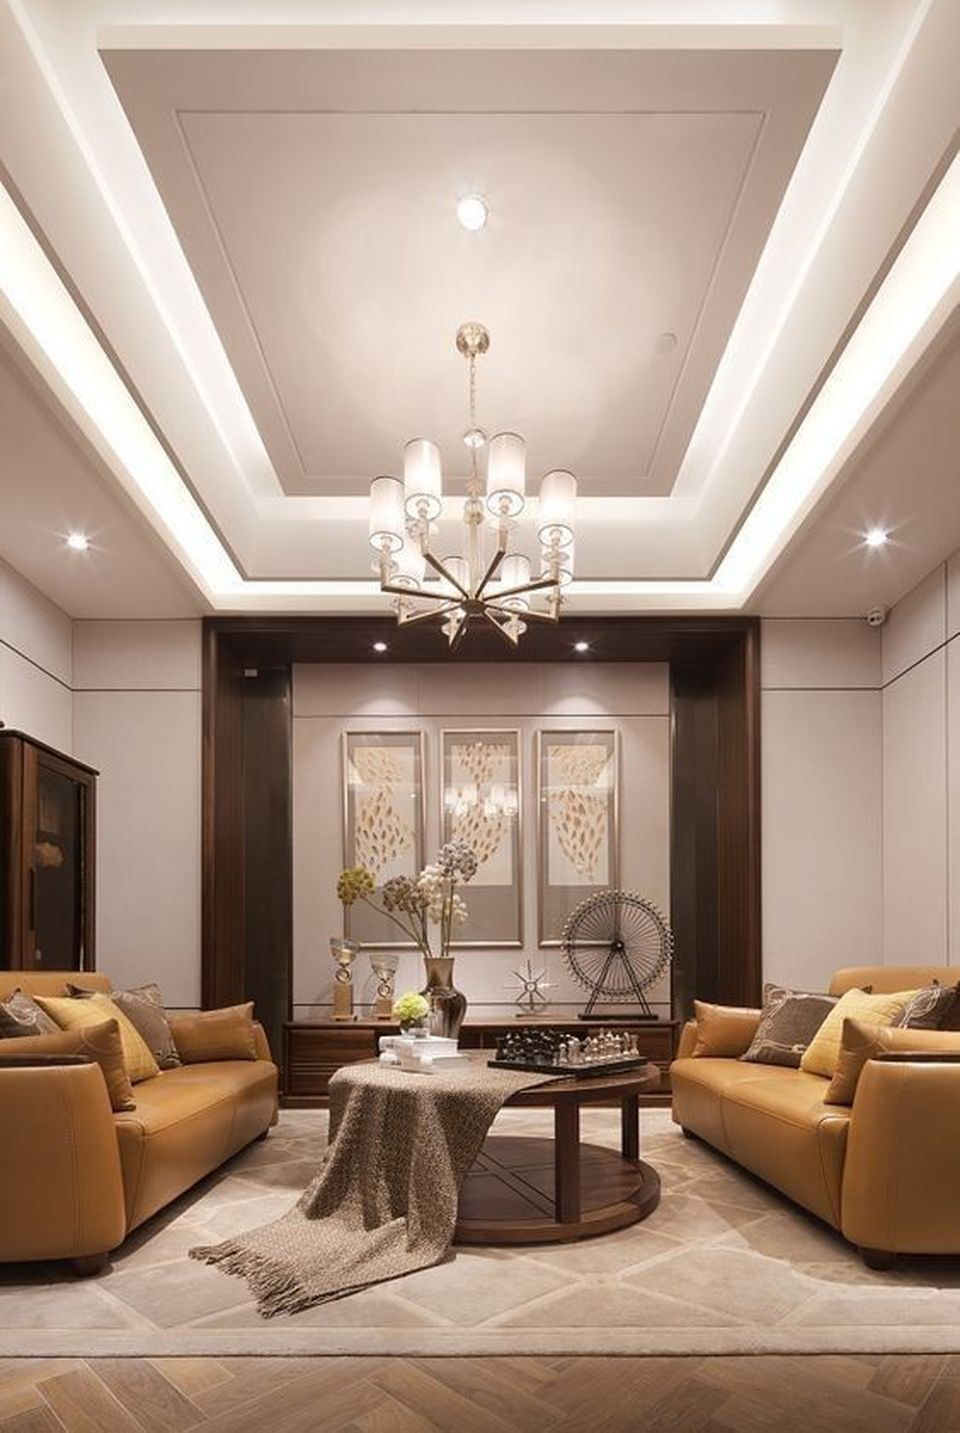 Down Ceiling Designs For Drawing Room: 70 Modern False Ceilings With Cove Lighting Design For